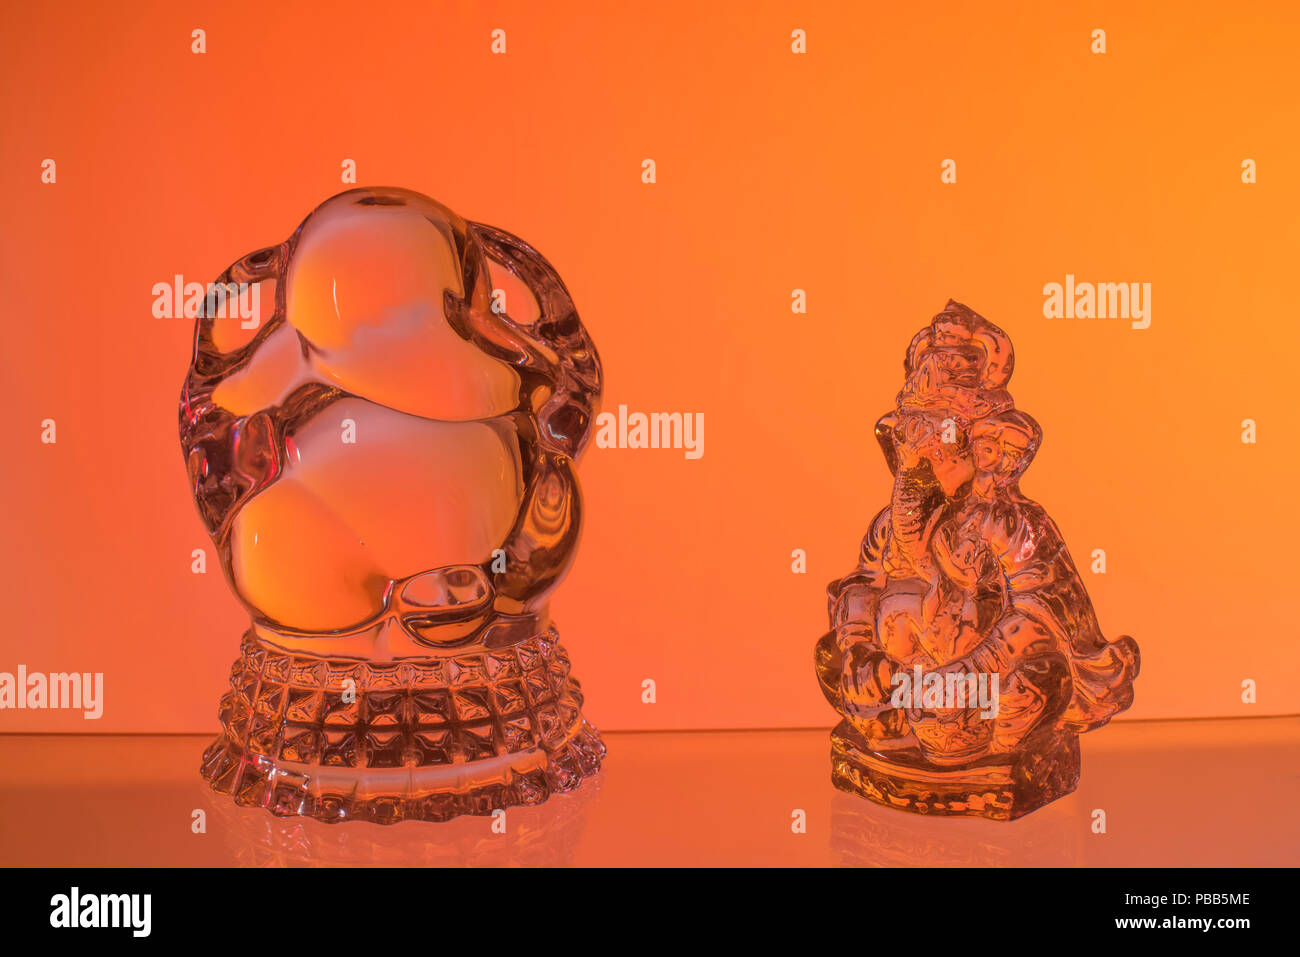 Two idols of Lord Ganesh the divine elephant-headed Hindu Gods made of glass and worshiped by Indian people kept against red orange yellow background - Stock Image